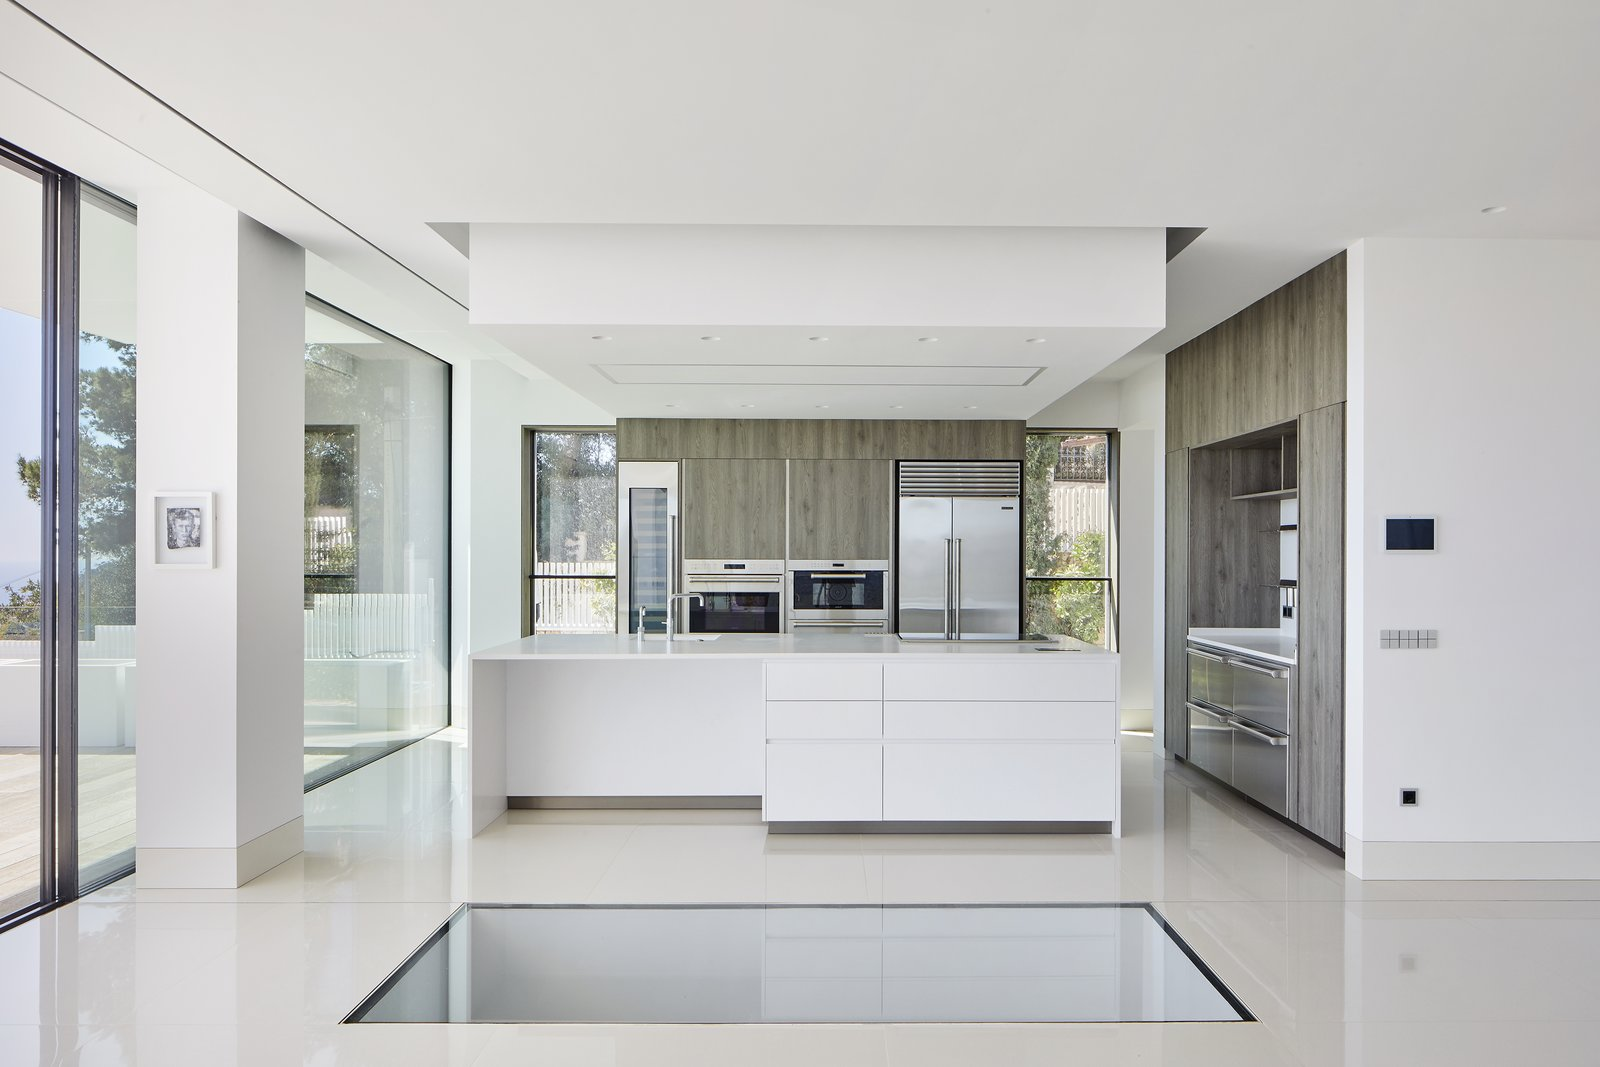 Kitchen, Wall Oven, White, Metal, Microwave, Wine Cooler, Drop In, Laminate, Ceiling, Granite, Range, Range Hood, Dishwasher, Ice Maker, Table, Beverage Center, Cooktops, Wood, Refrigerator, and Porcelain Tile Kitchen.  Best Kitchen Microwave Drop In Range Hood Ceiling White Refrigerator Granite Metal Photos from 廚房